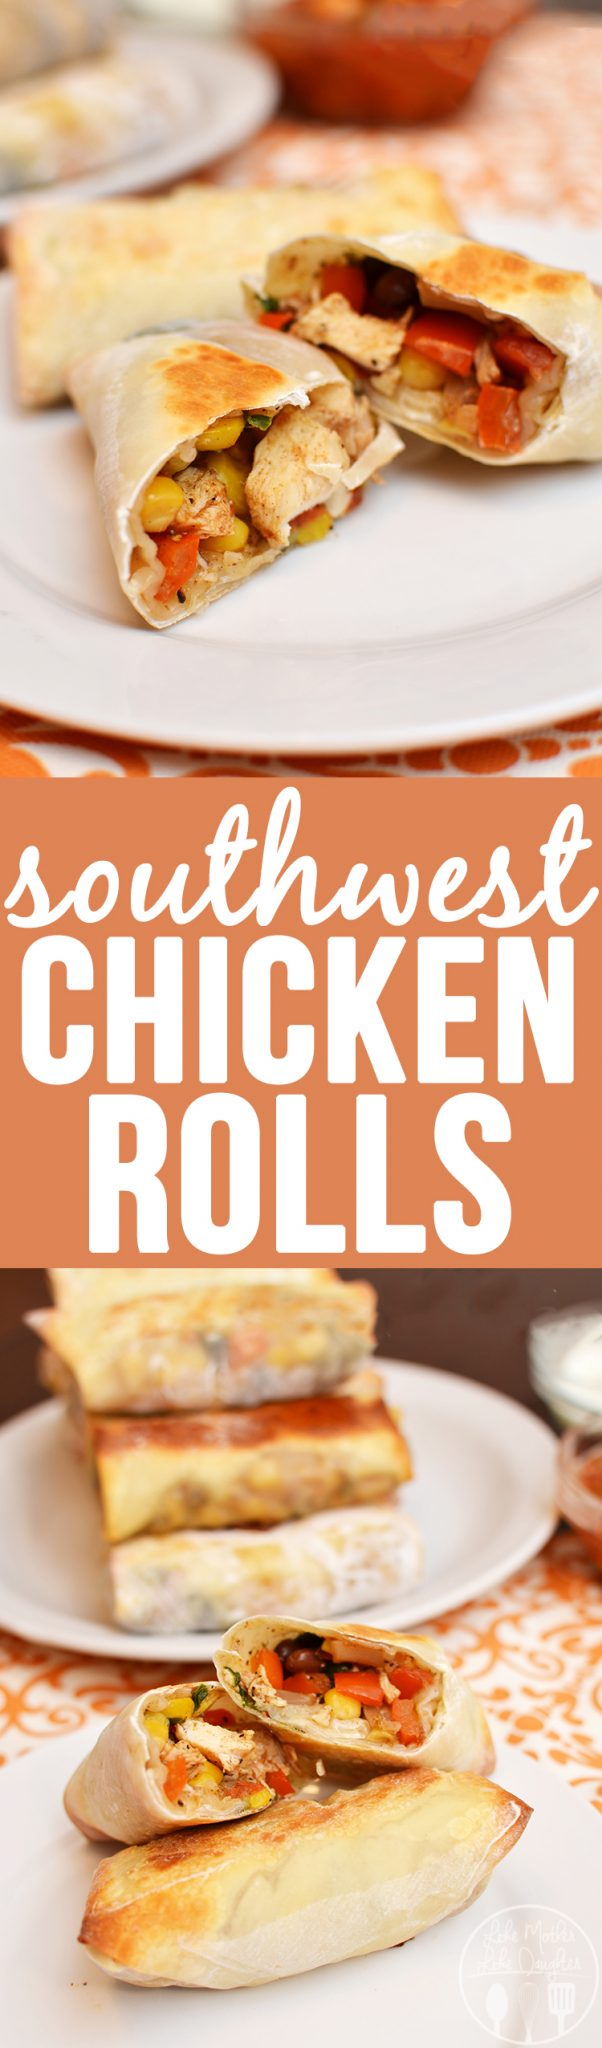 Southwest Chicken Rolls - These southwest chicken rolls are healthy, easy to make and so delicious! Perfect for an appetizer , side dish or main dish too!